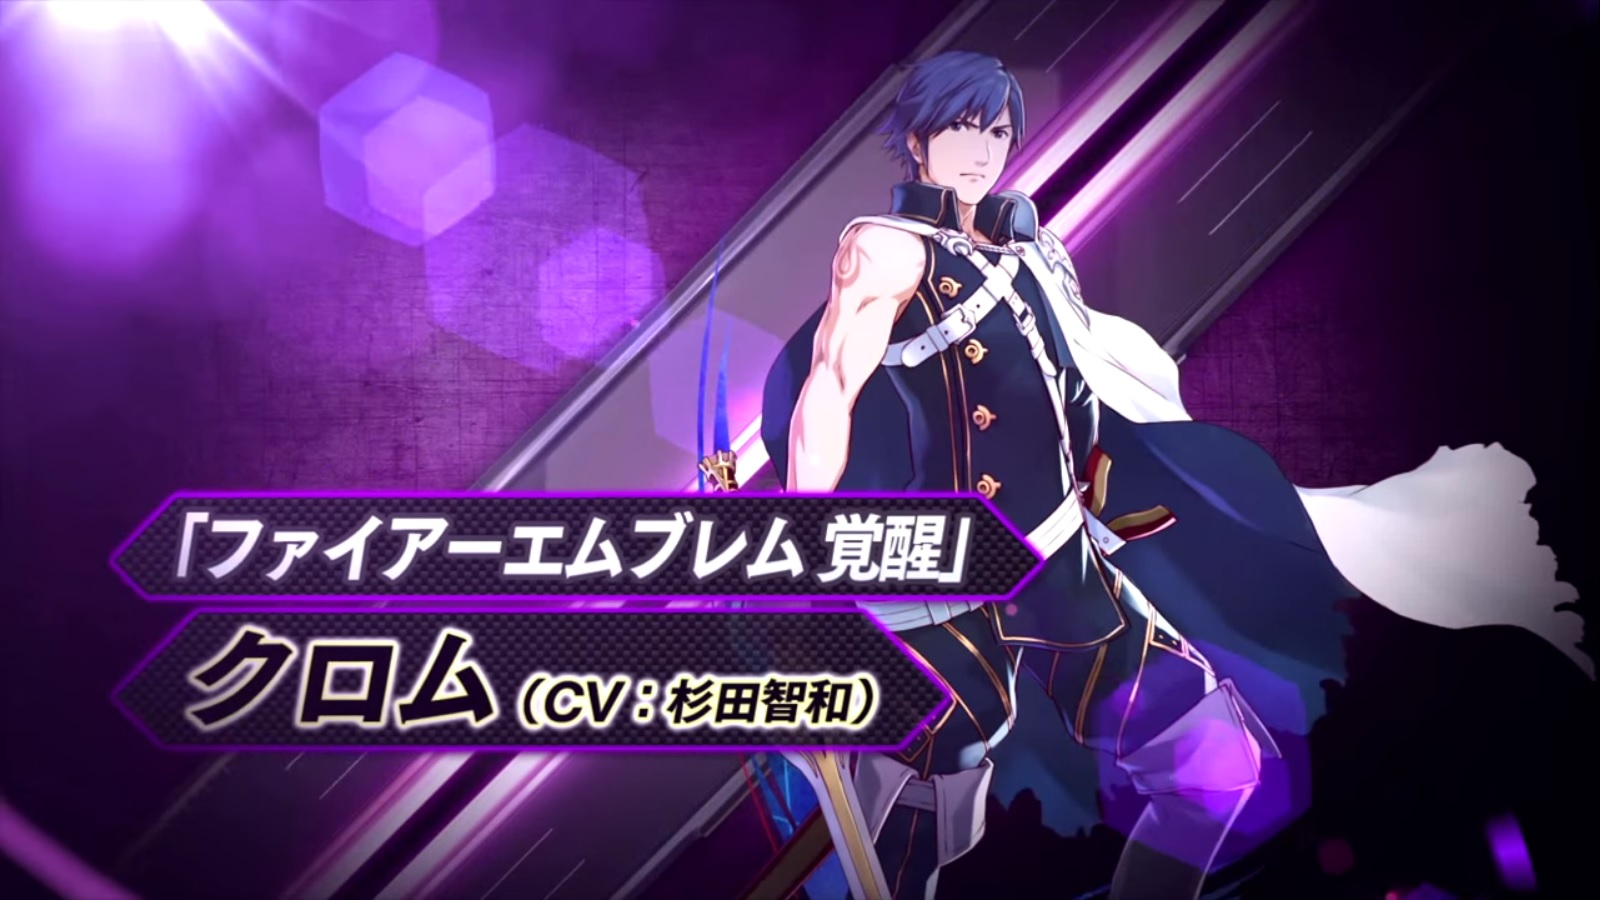 Project X Zone 2 Adds Fire Emblem S Chrom And Lucina Xenoblade S